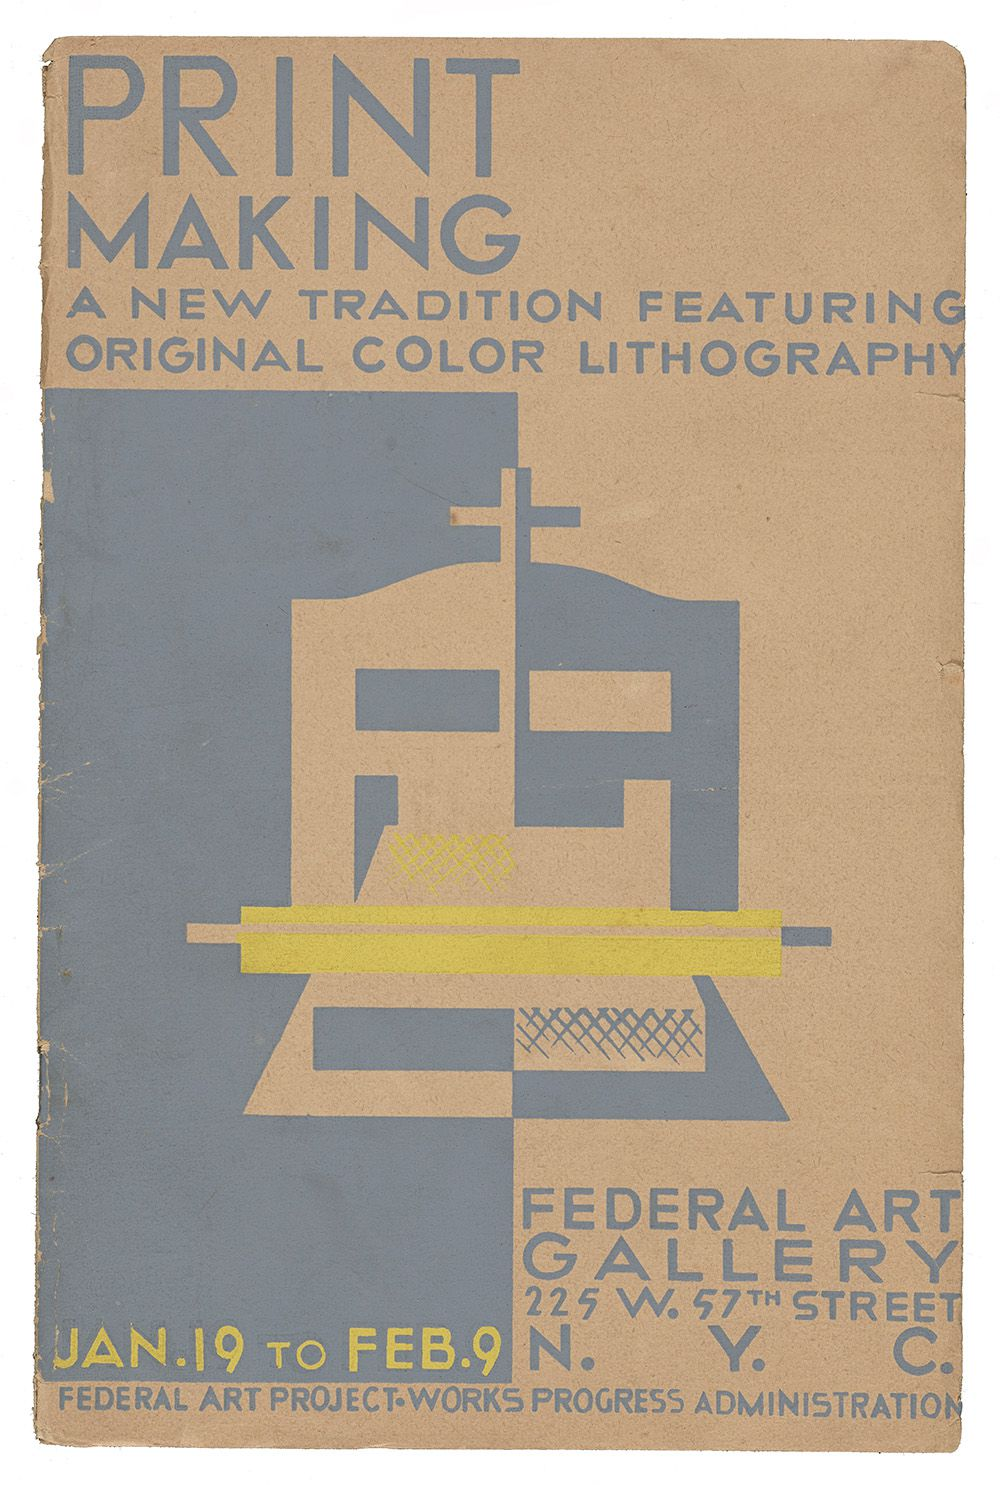 Catalog for exhibition of printmaking sponsored by the Works Progress Administraion